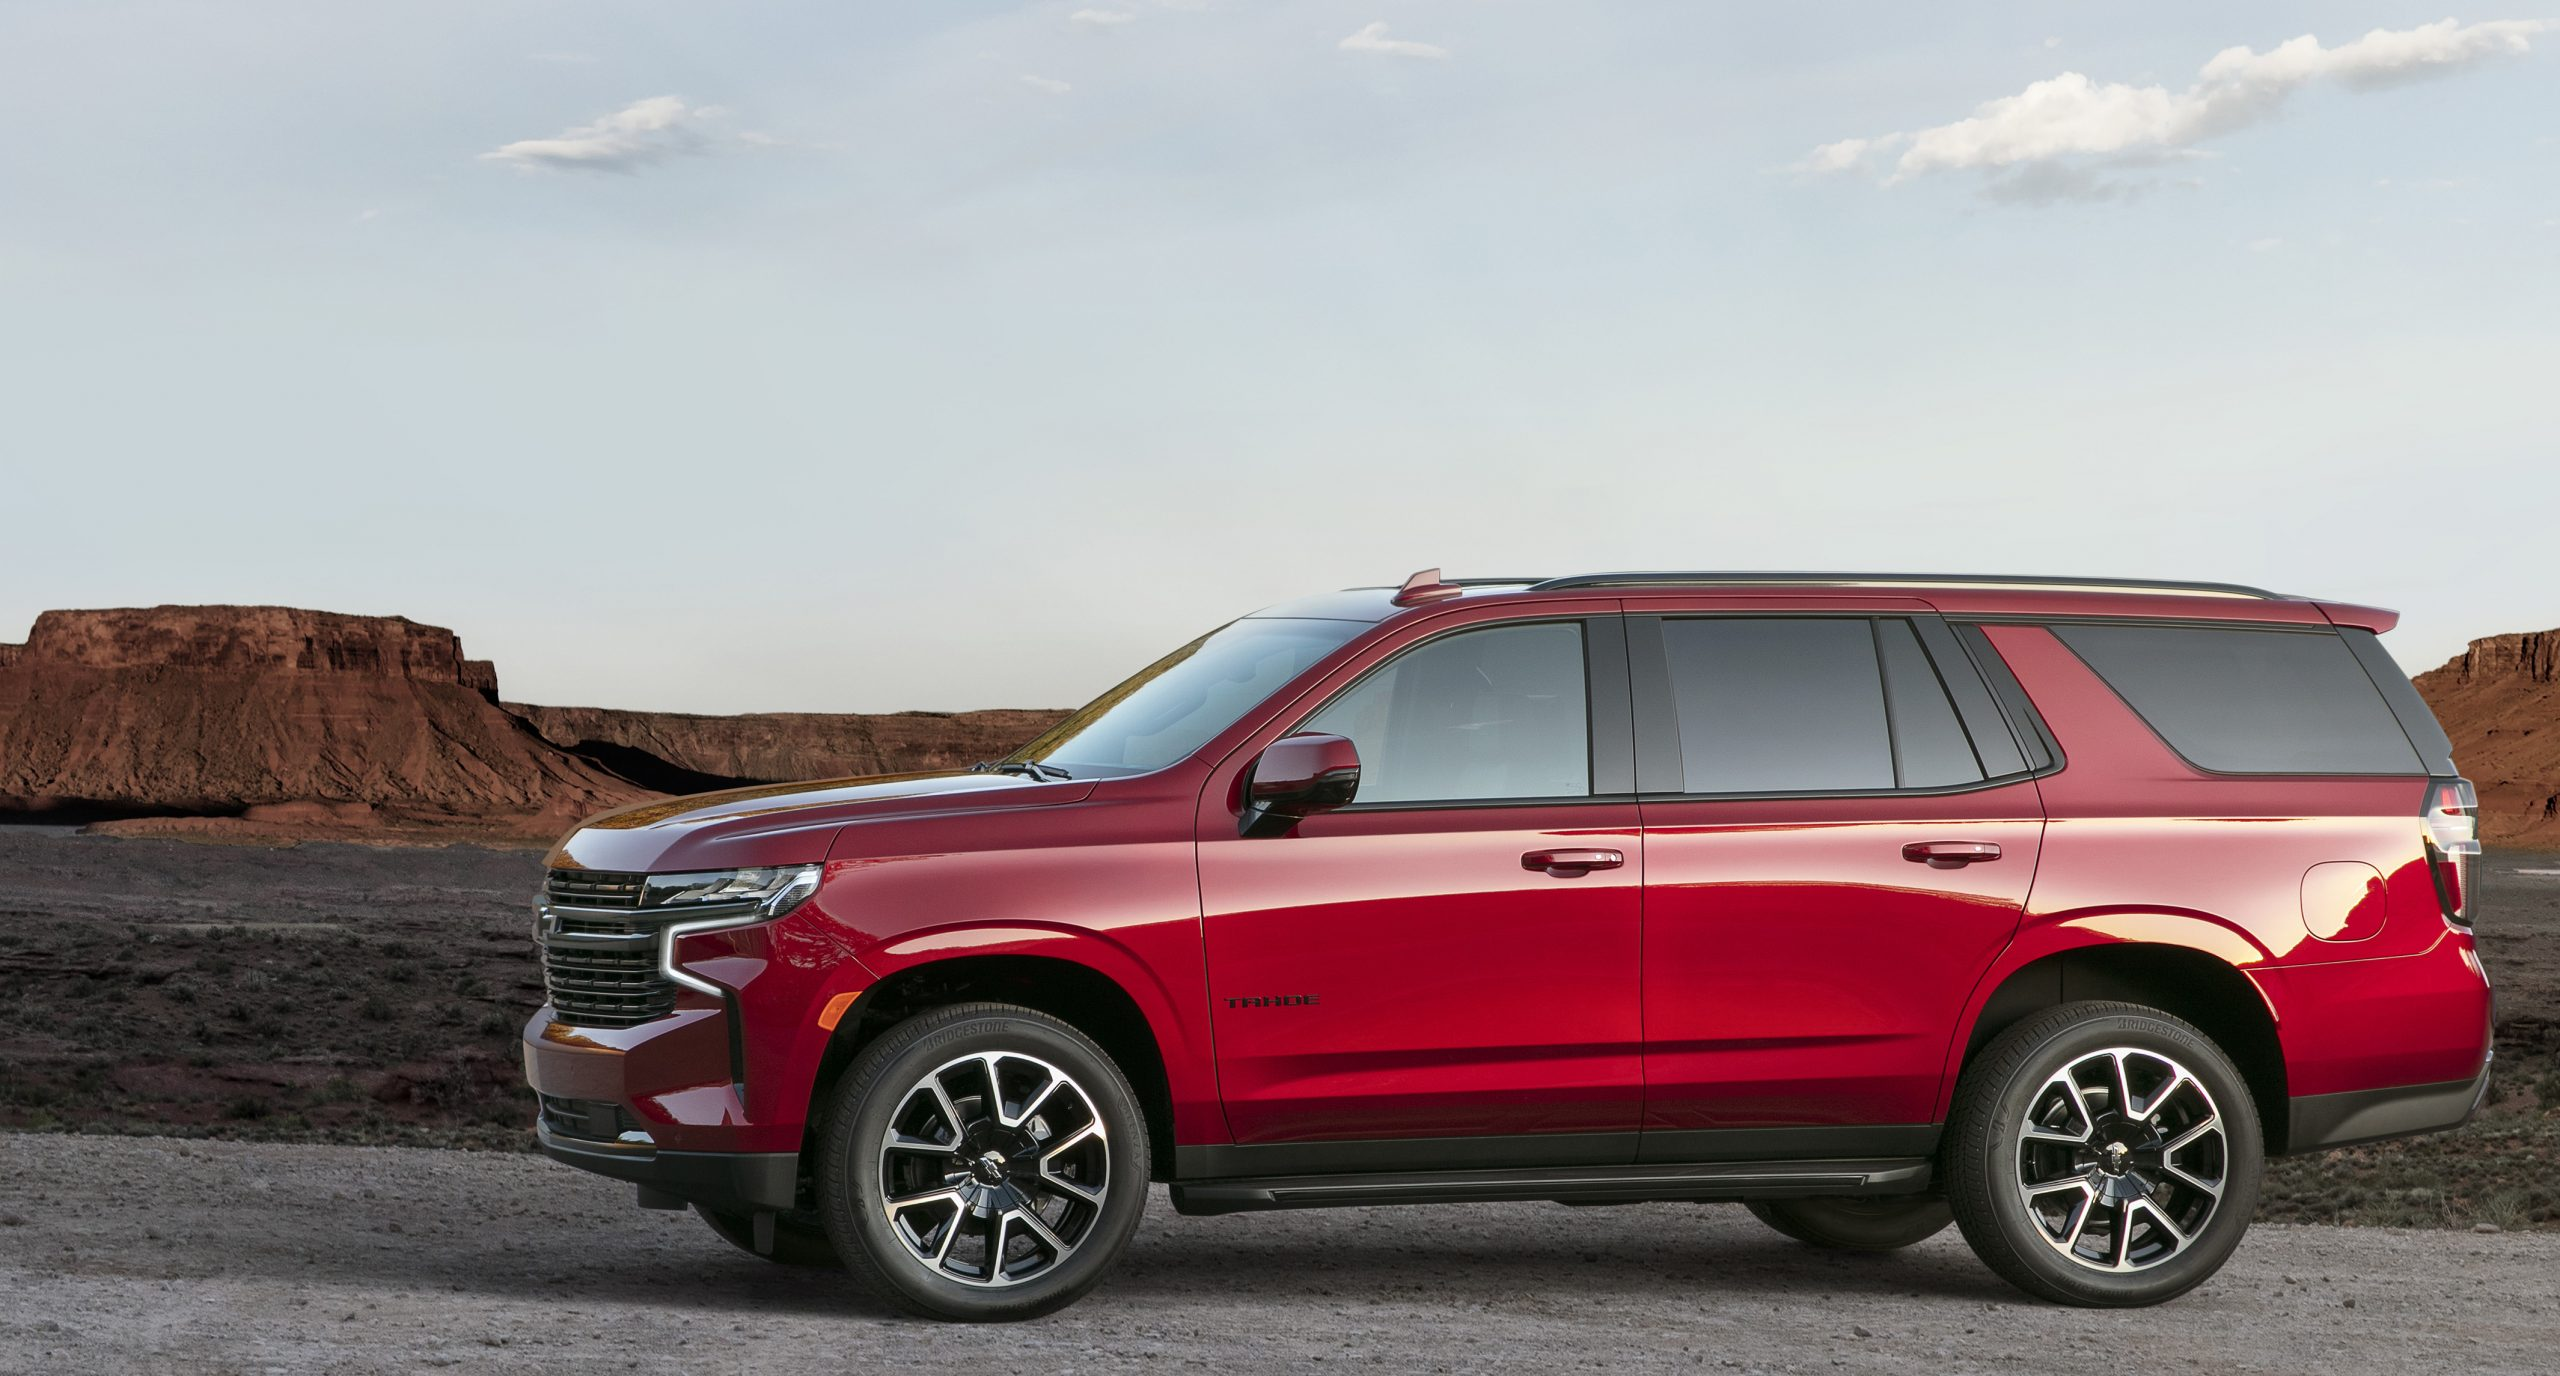 Ace Of Base: 2021 Chevrolet Tahoe - The Truth About Cars 2021 Chevy Tahoe Lt Manual, Options, Price